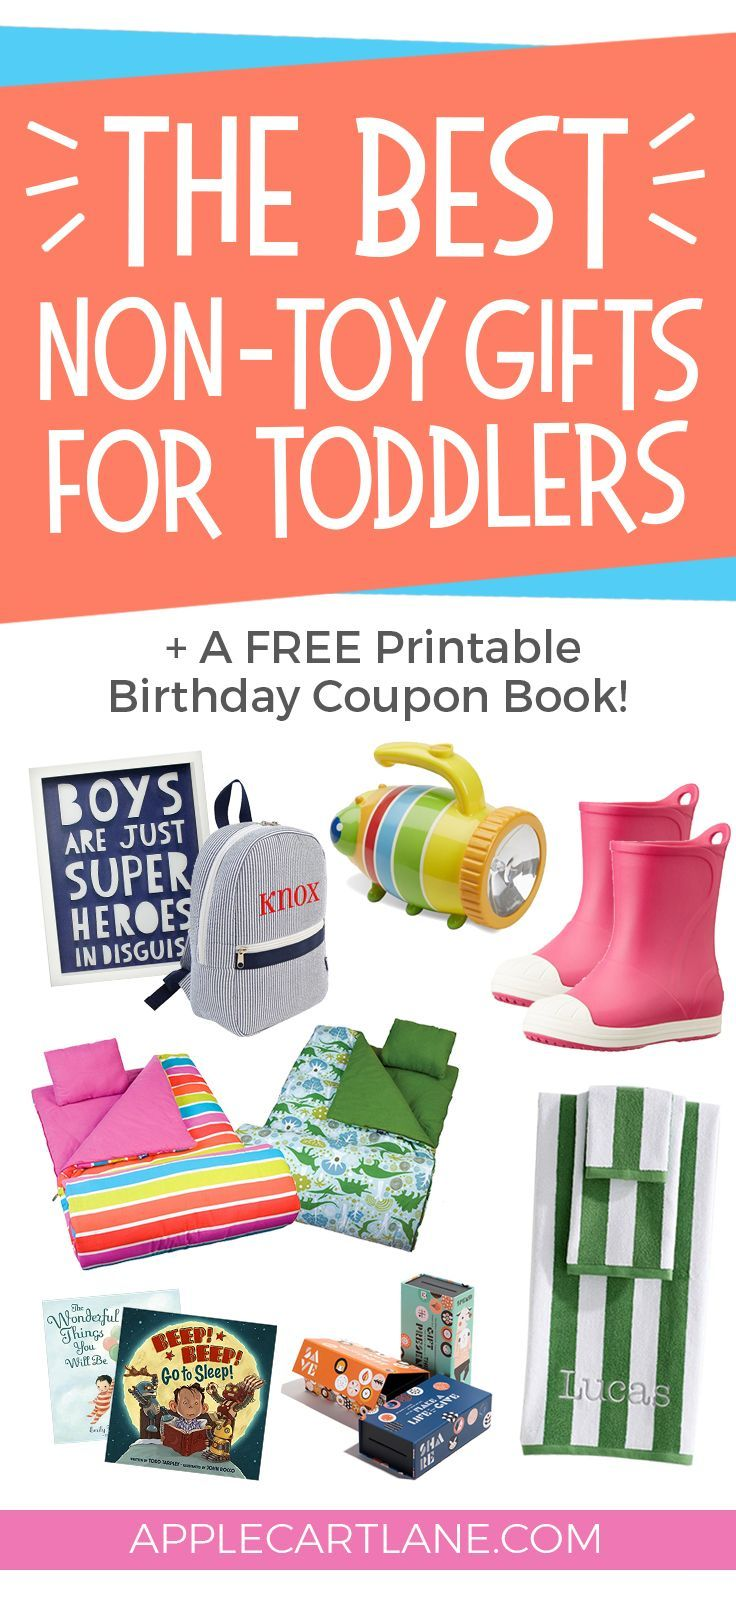 A fun and unique list of non-toy gifts for toddlers, PLUS, a free printable birthday coupon book!